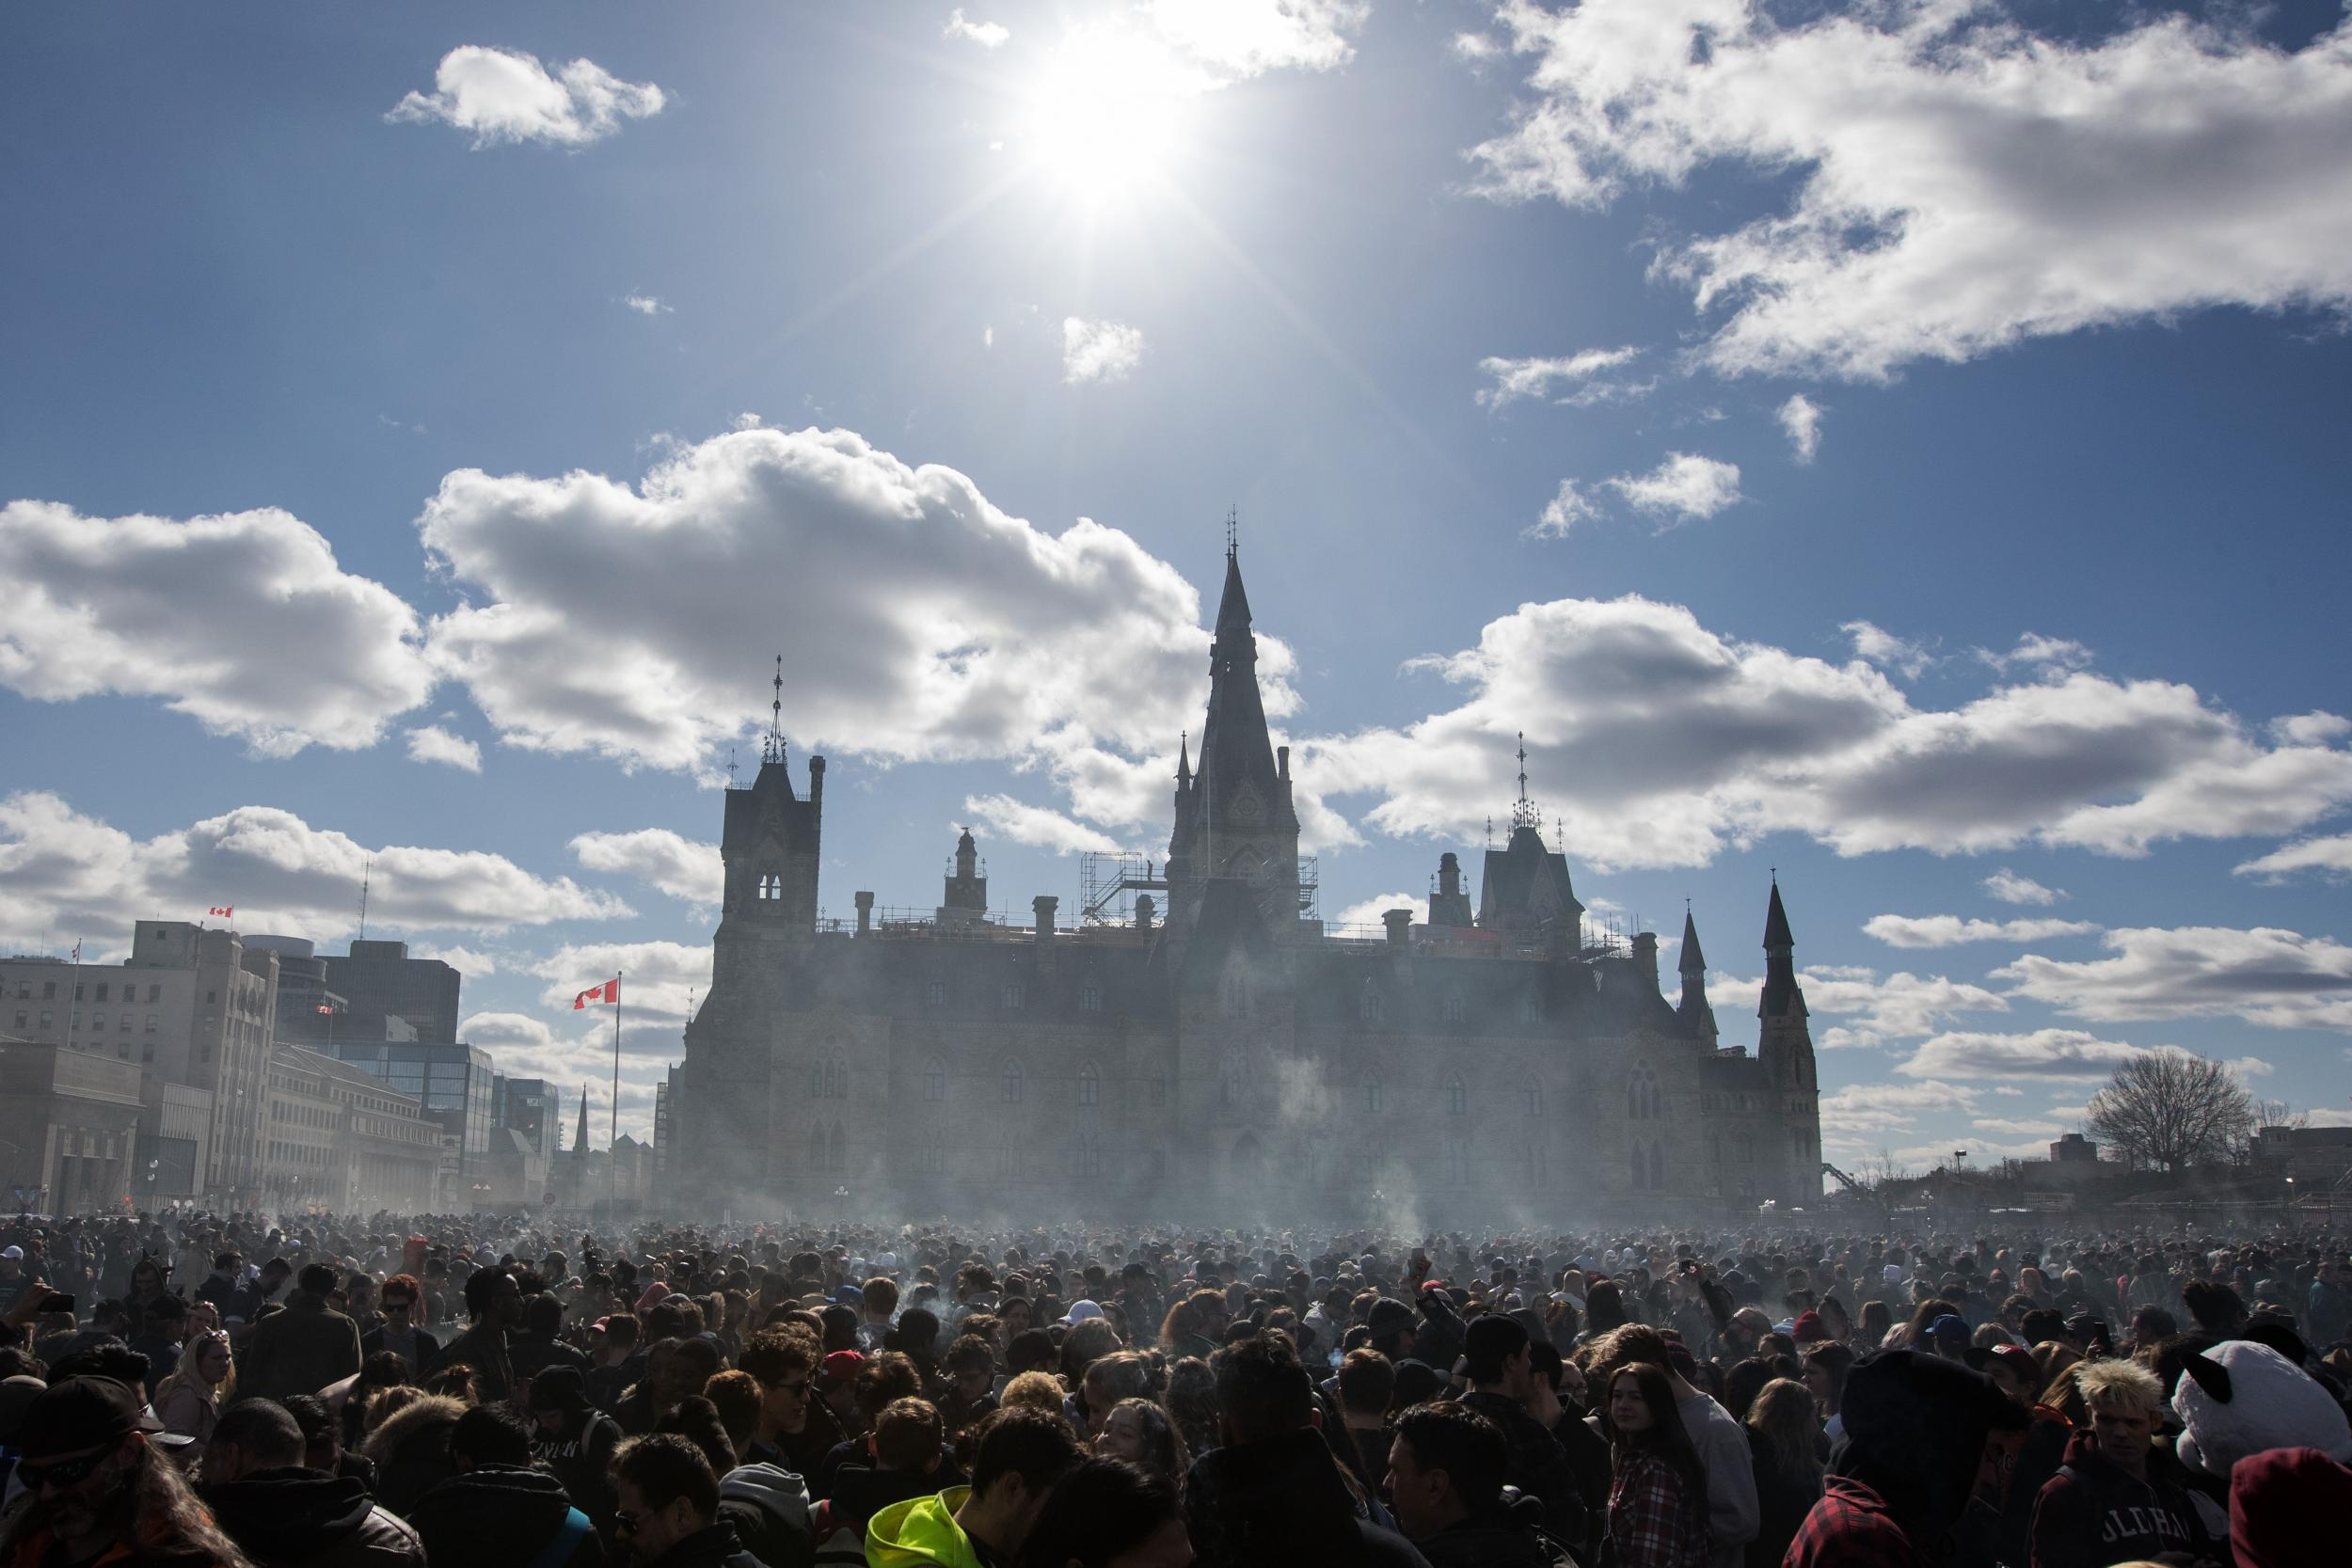 420 dating canada 95+ years canada to suffer continued victimization under failed prohibition policies 1923 - october 17, 2018 - how many more years of thousands of victims until legalized 420 = repeal.